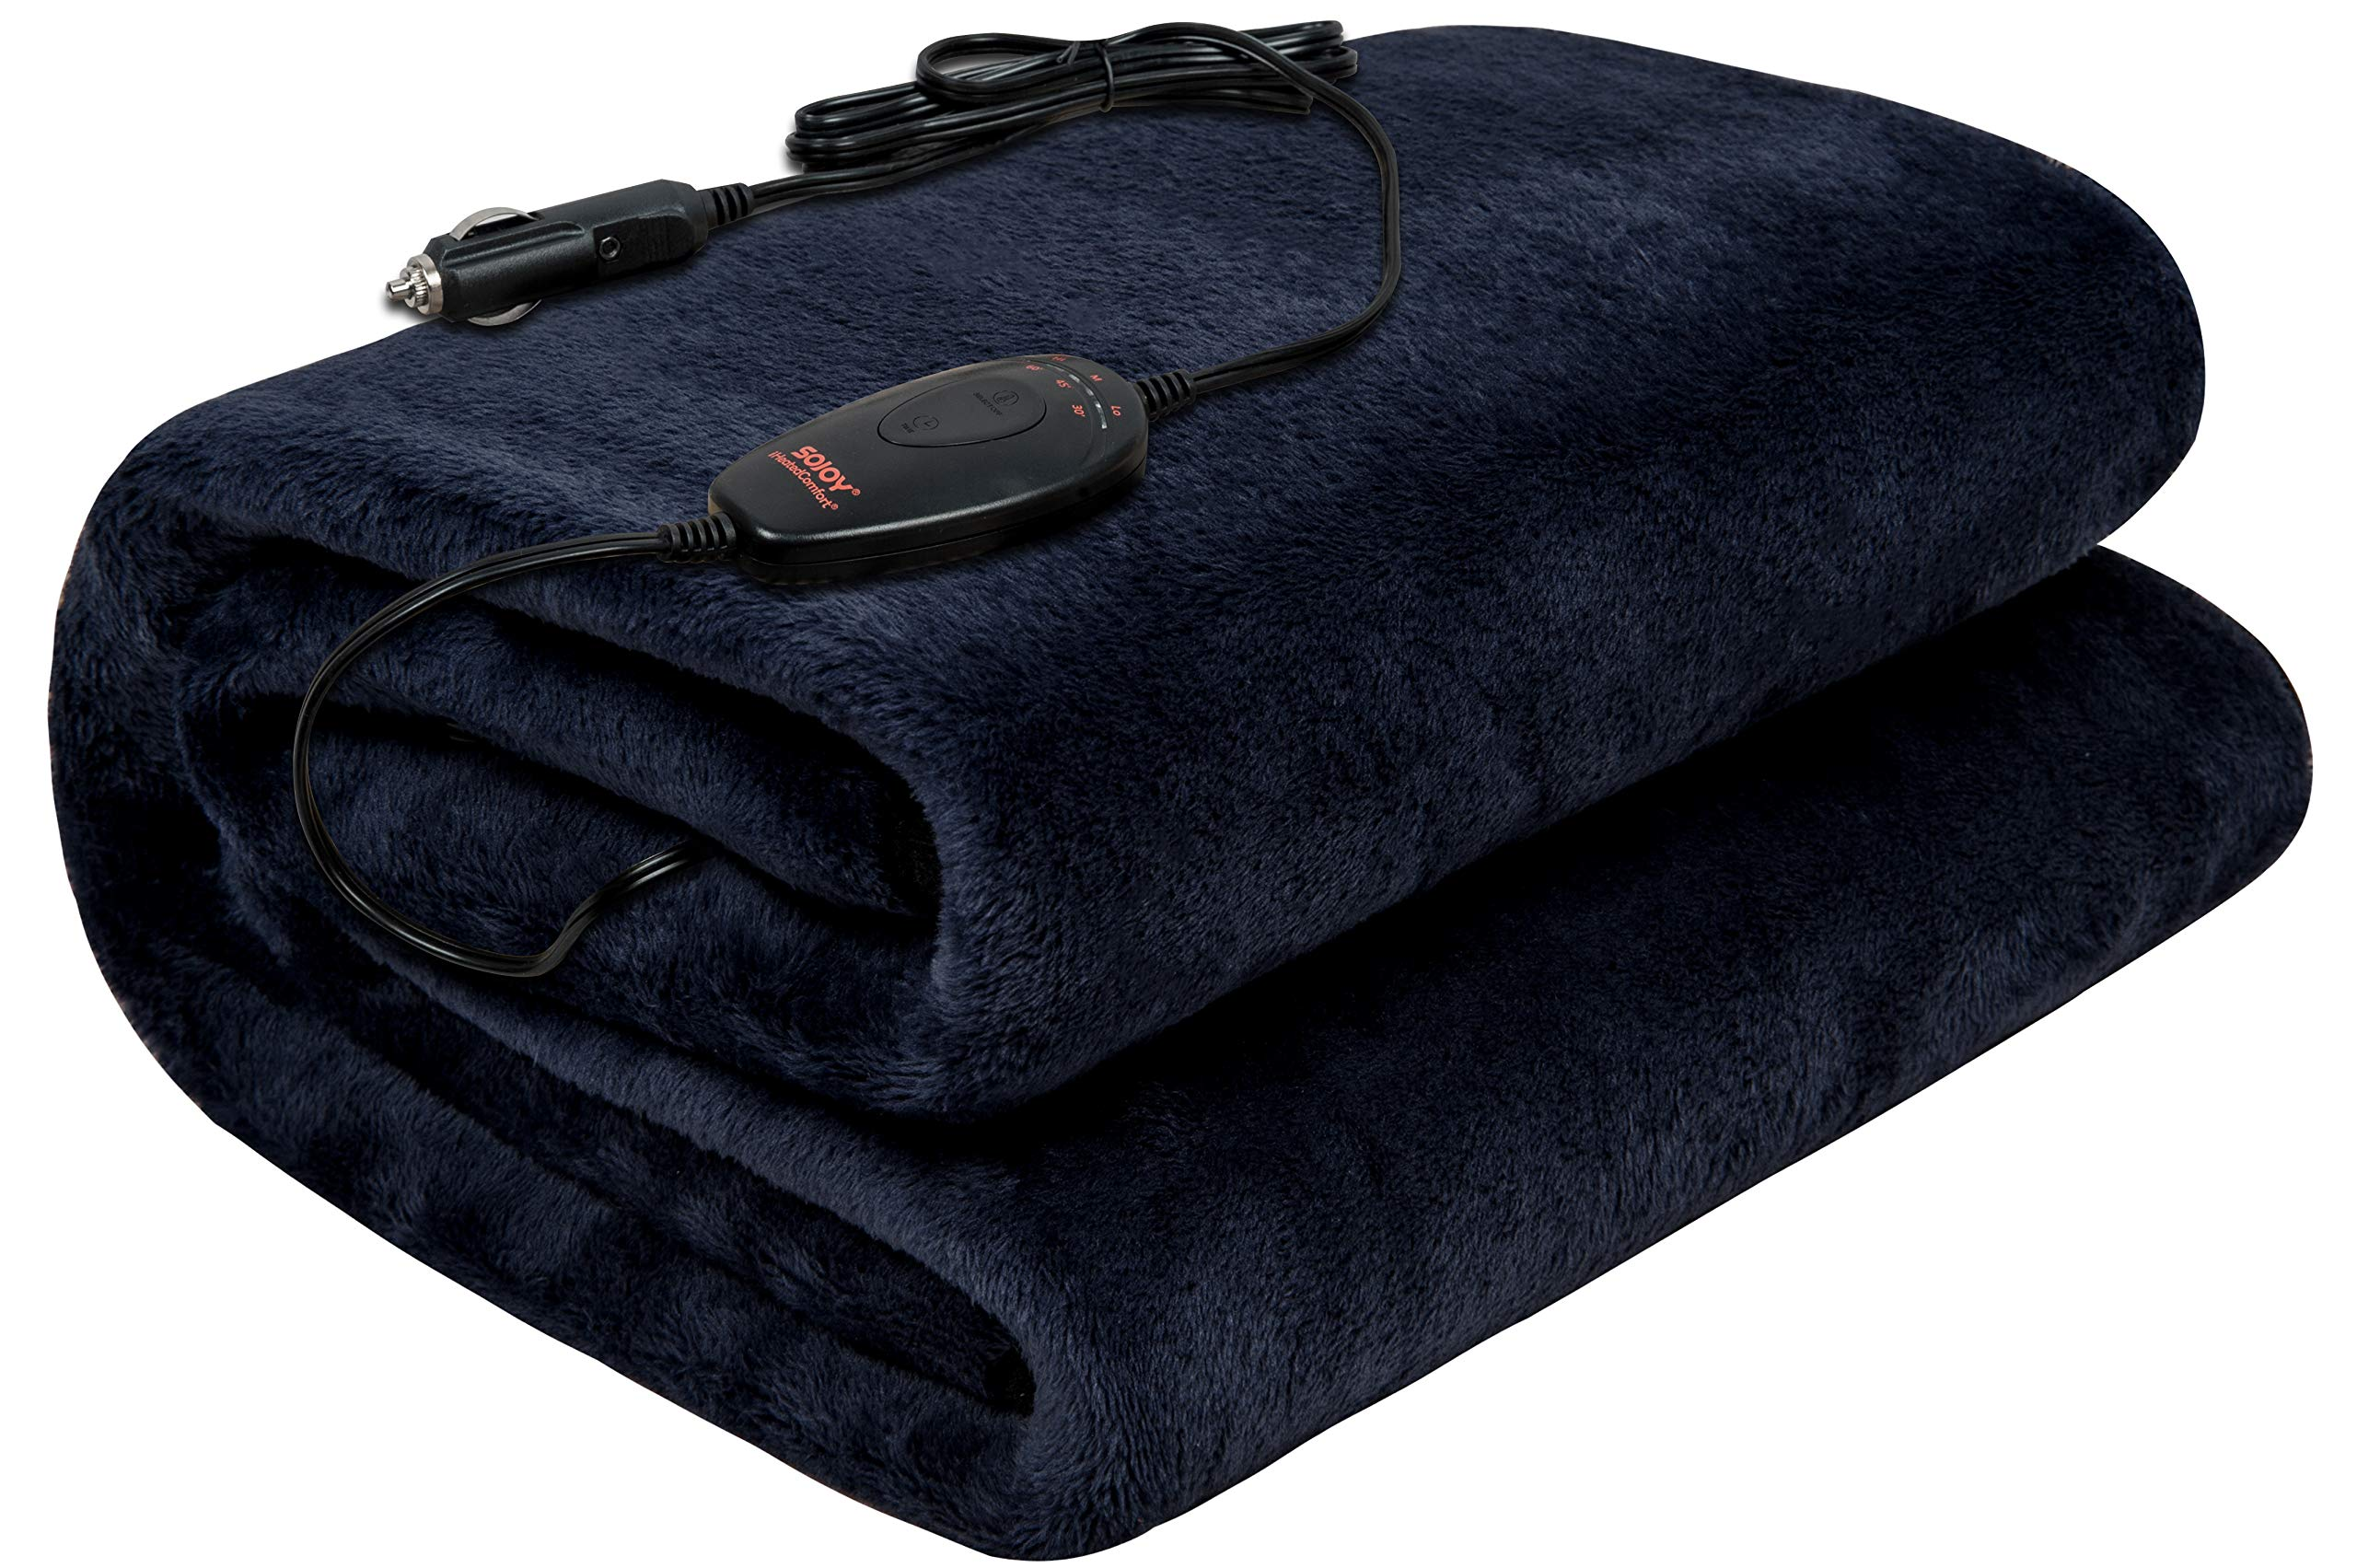 Sojoy 12V Heated Smart Multifunctional Travel Electric Blanket for Car, Truck, Boats or RV with High/Low Temp Control (55''x 40'') (Navy Blue) by Sojoy